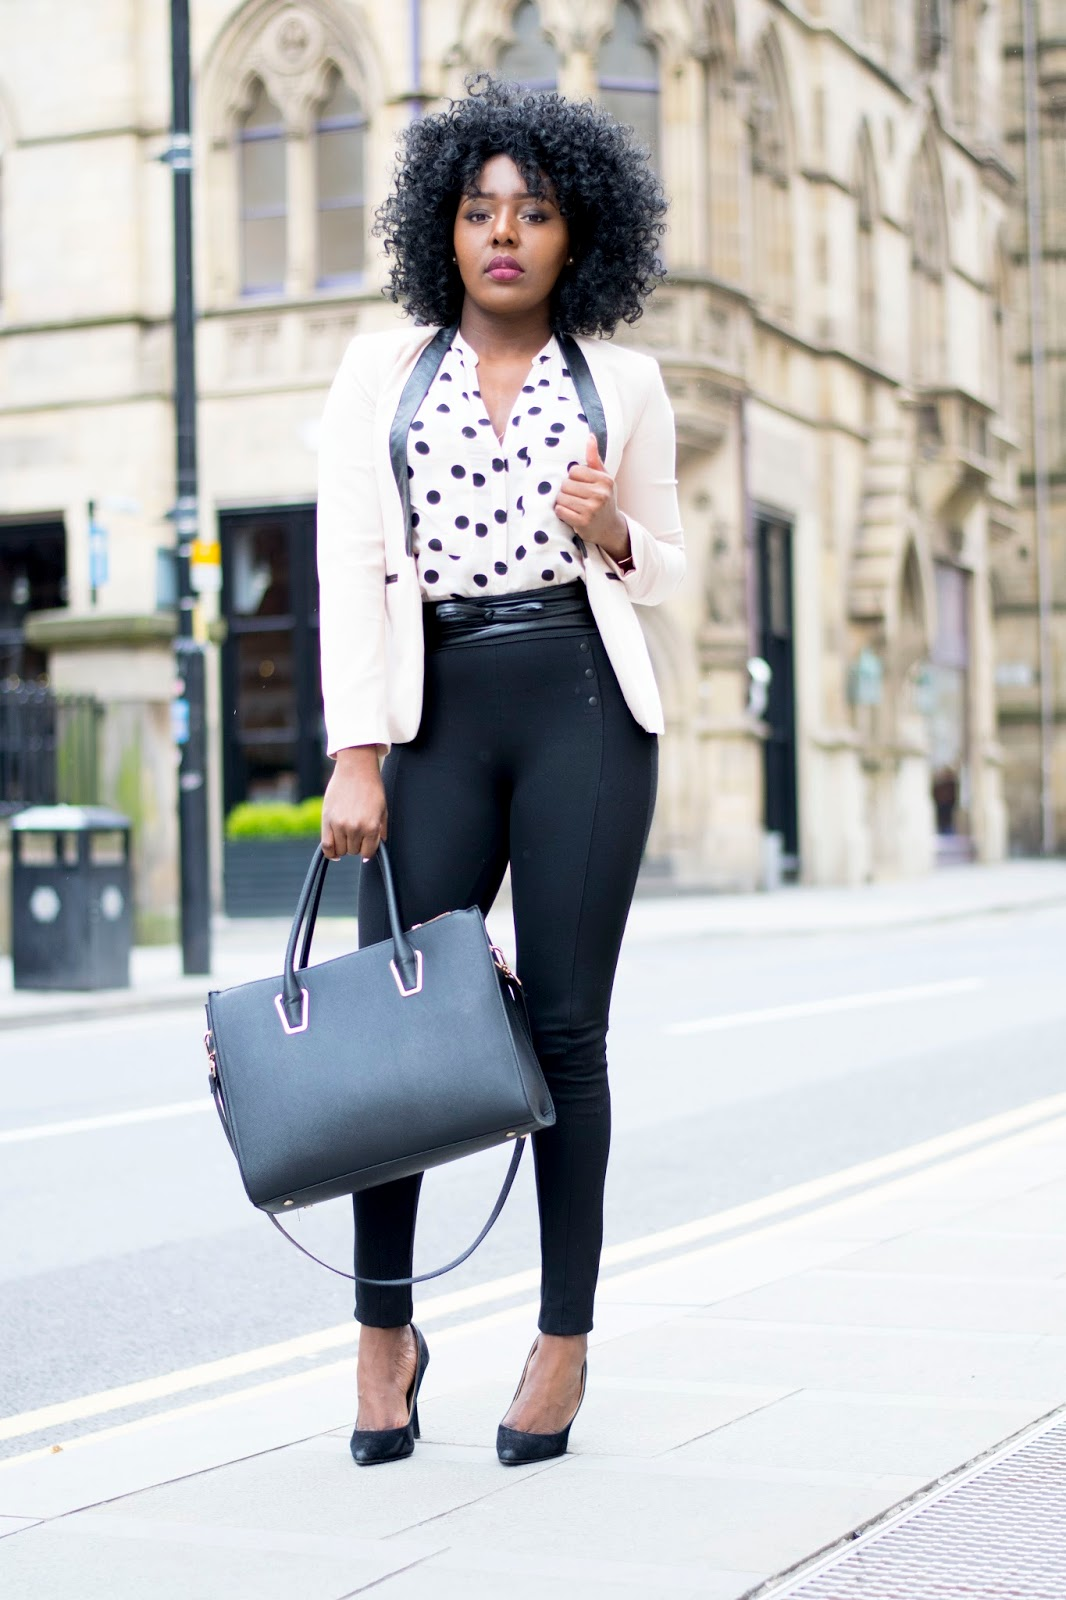 Corporate chic look